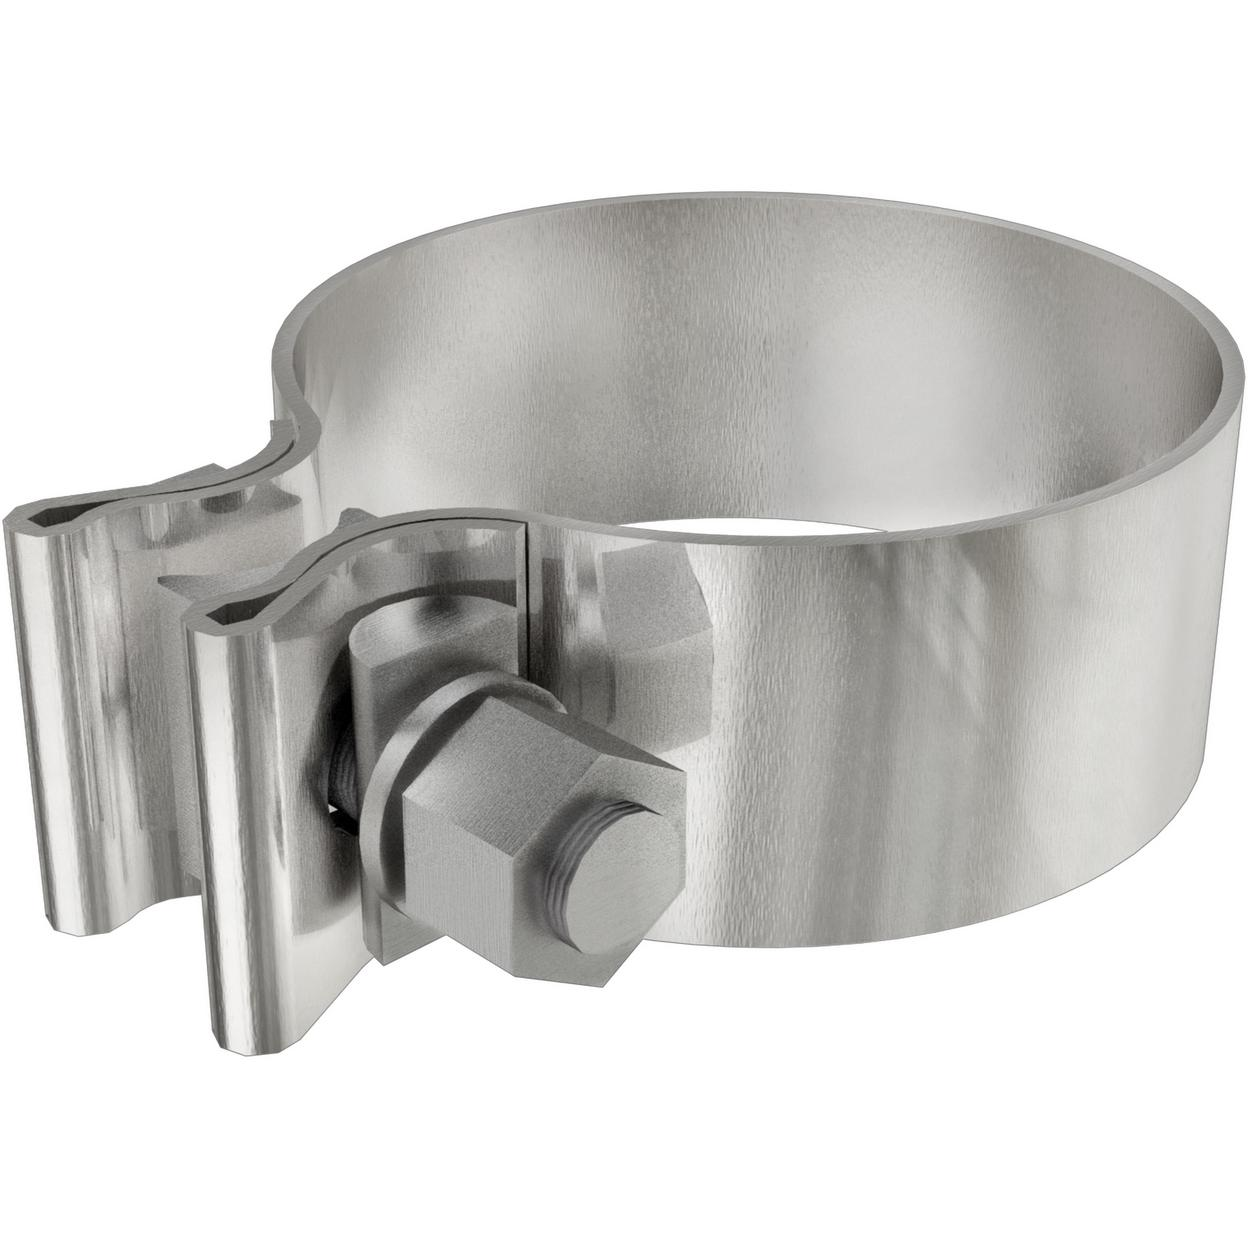 Lap Joint Band Clamp - 2.50in.